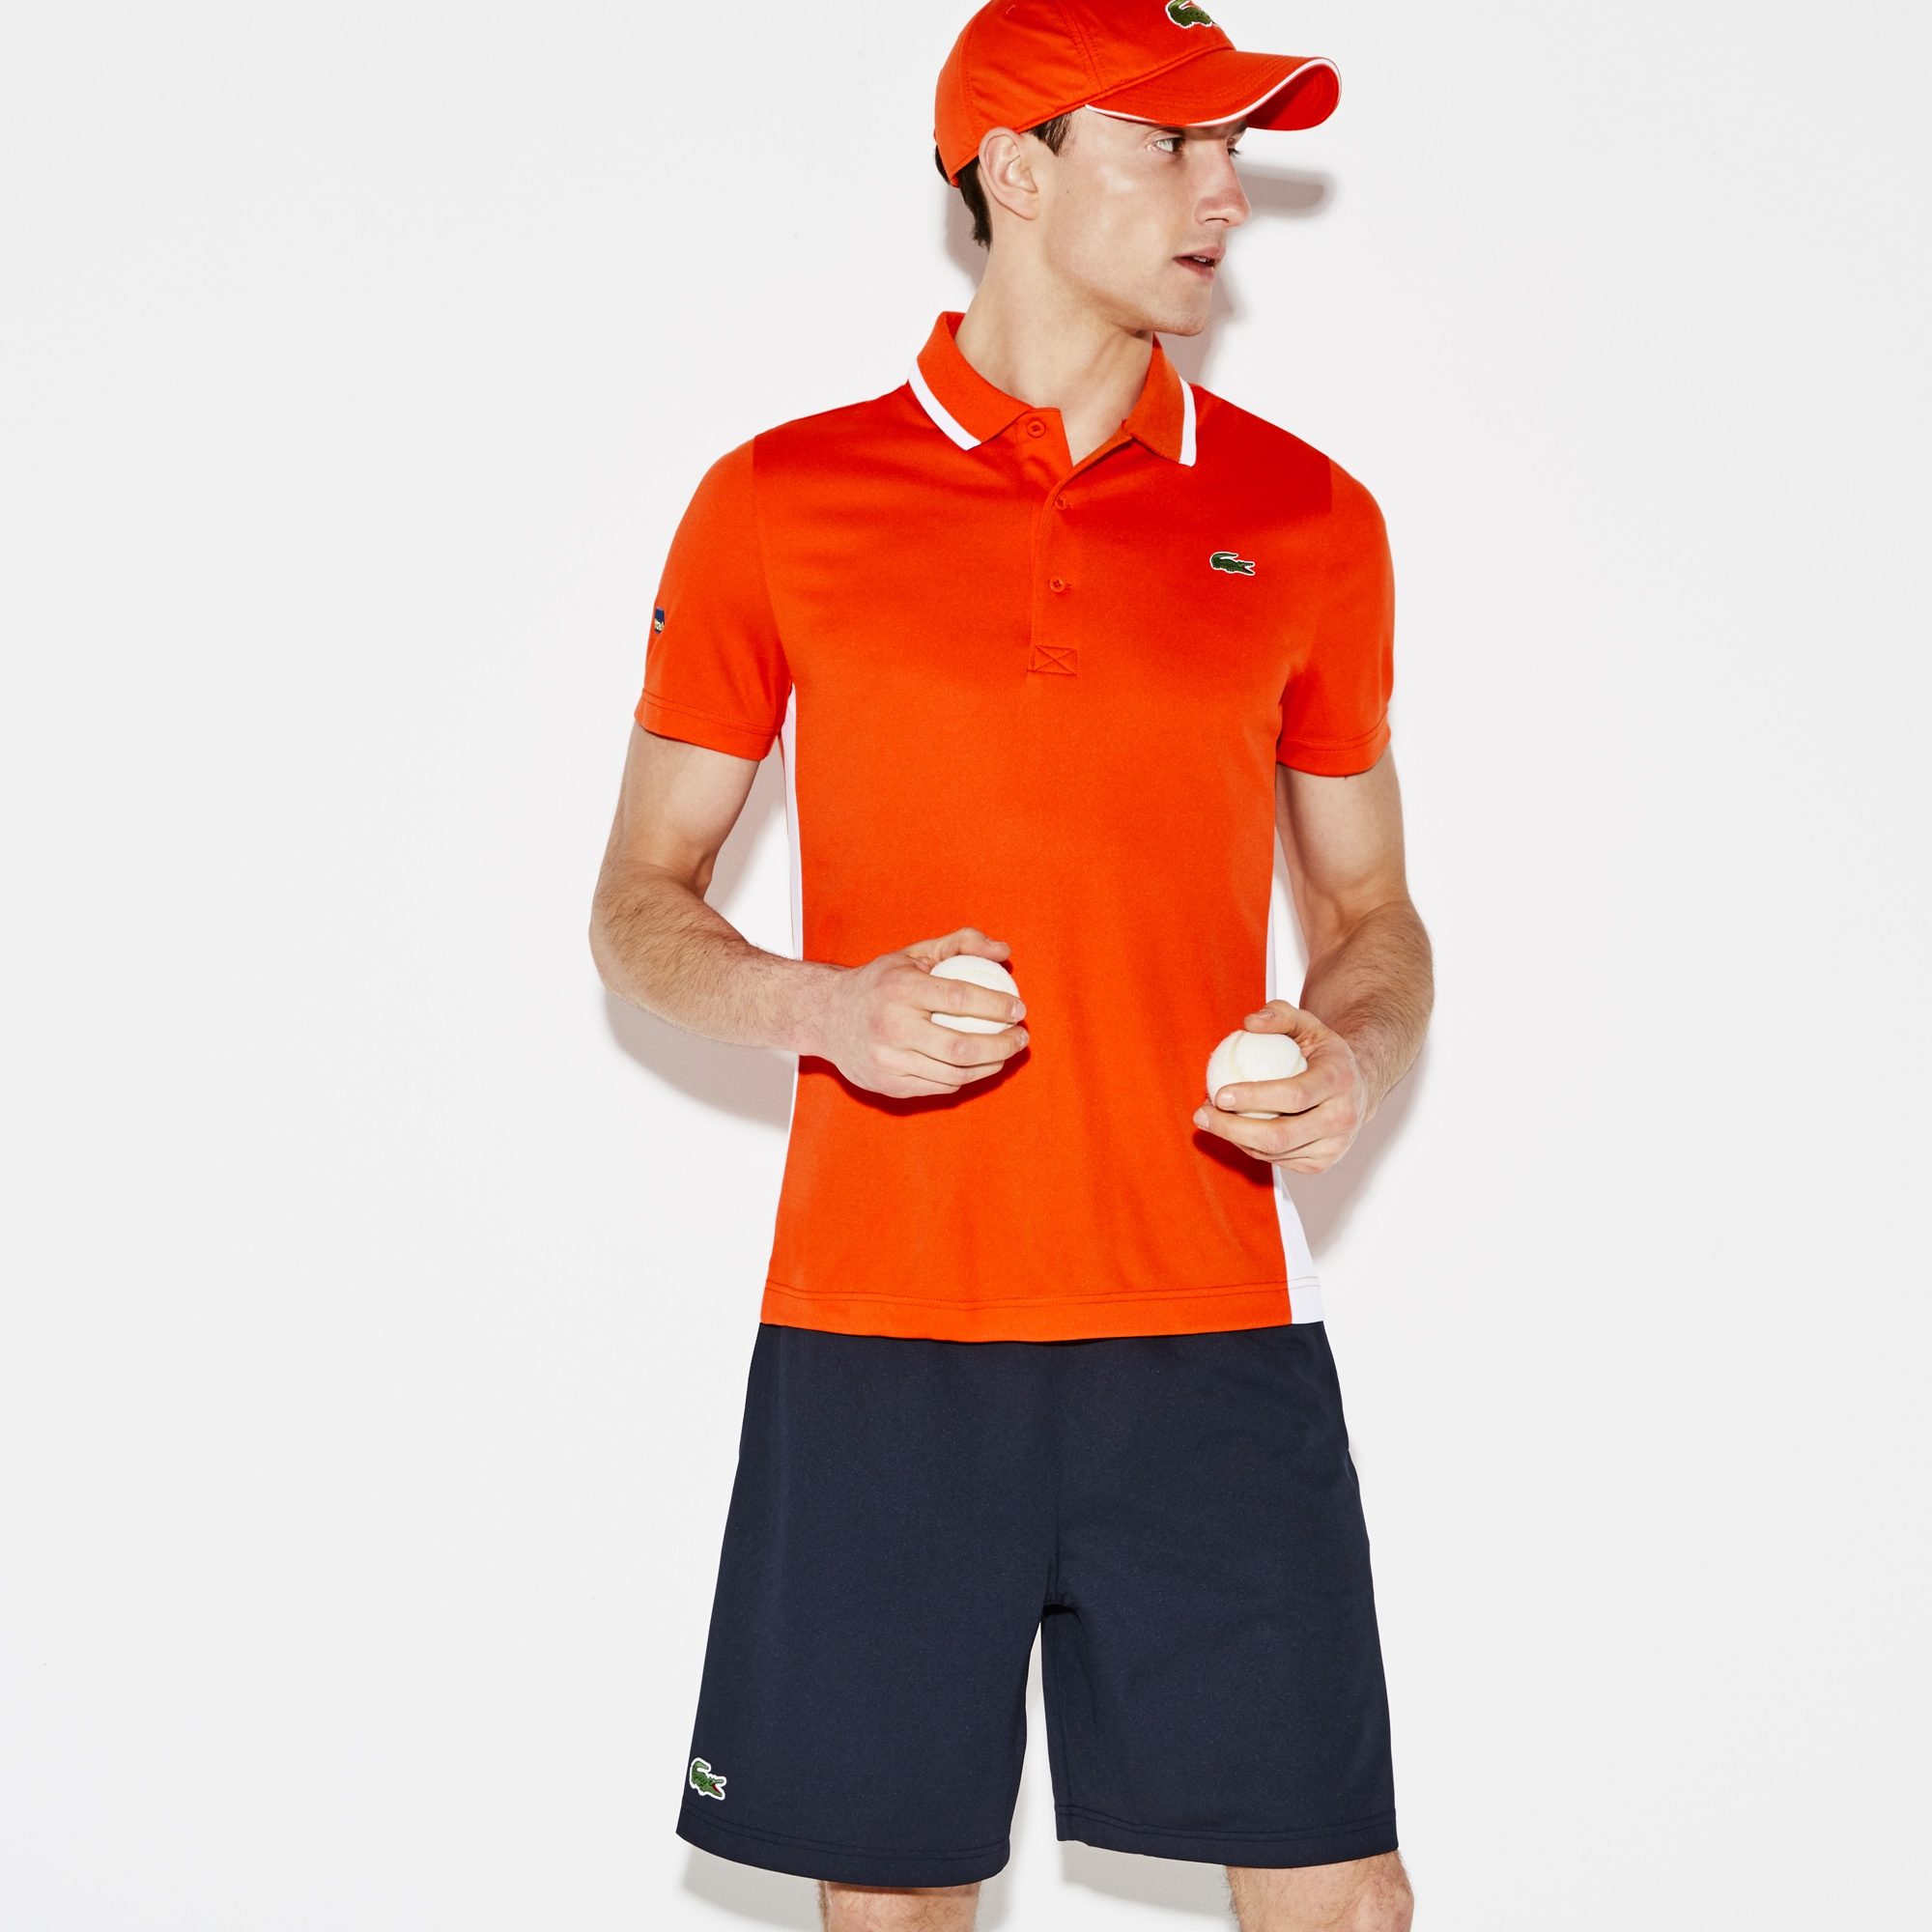 Men's SPORT Miami Open Oversized Croc Tech Piqué Tennis Polo